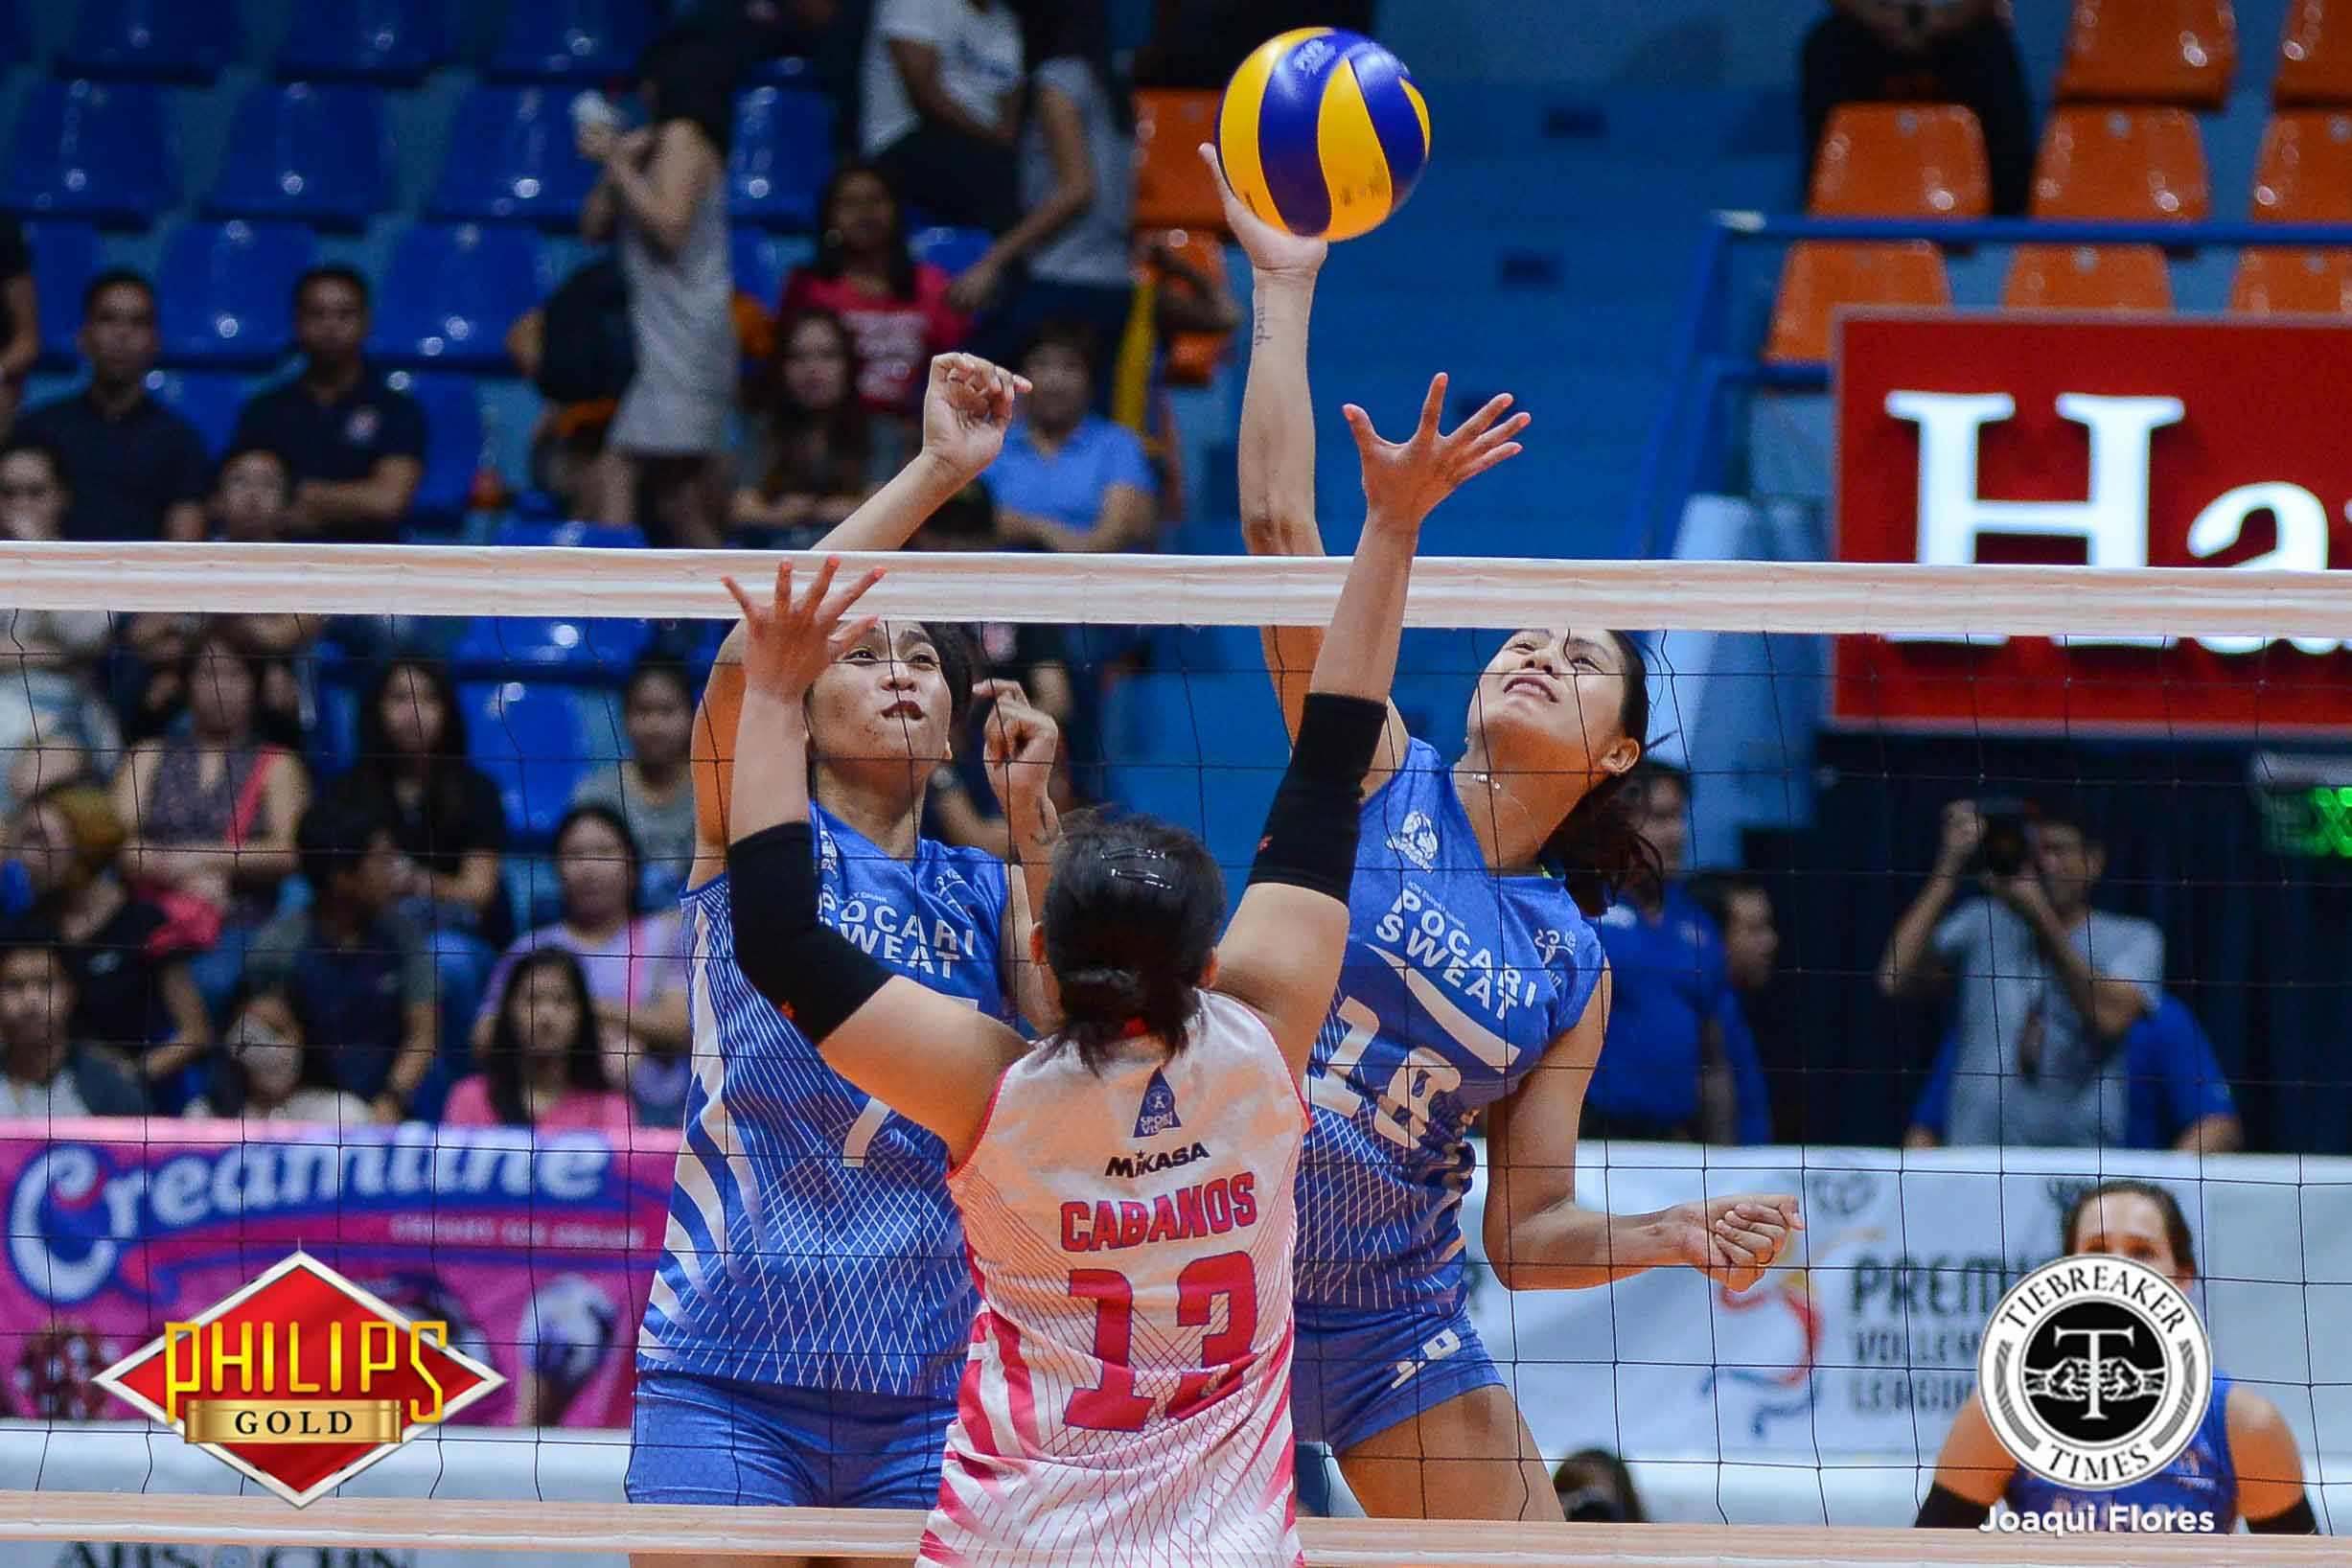 Philippine Sports News - Tiebreaker Times No hard feelings between Myla Pablo and former Lady Warriors News PVL Volleyball  Pocari Sweat-Air Force Lady Warriors Myla Pablo 2018 PVL Women's Reinforced Conference 2018 PVL Season